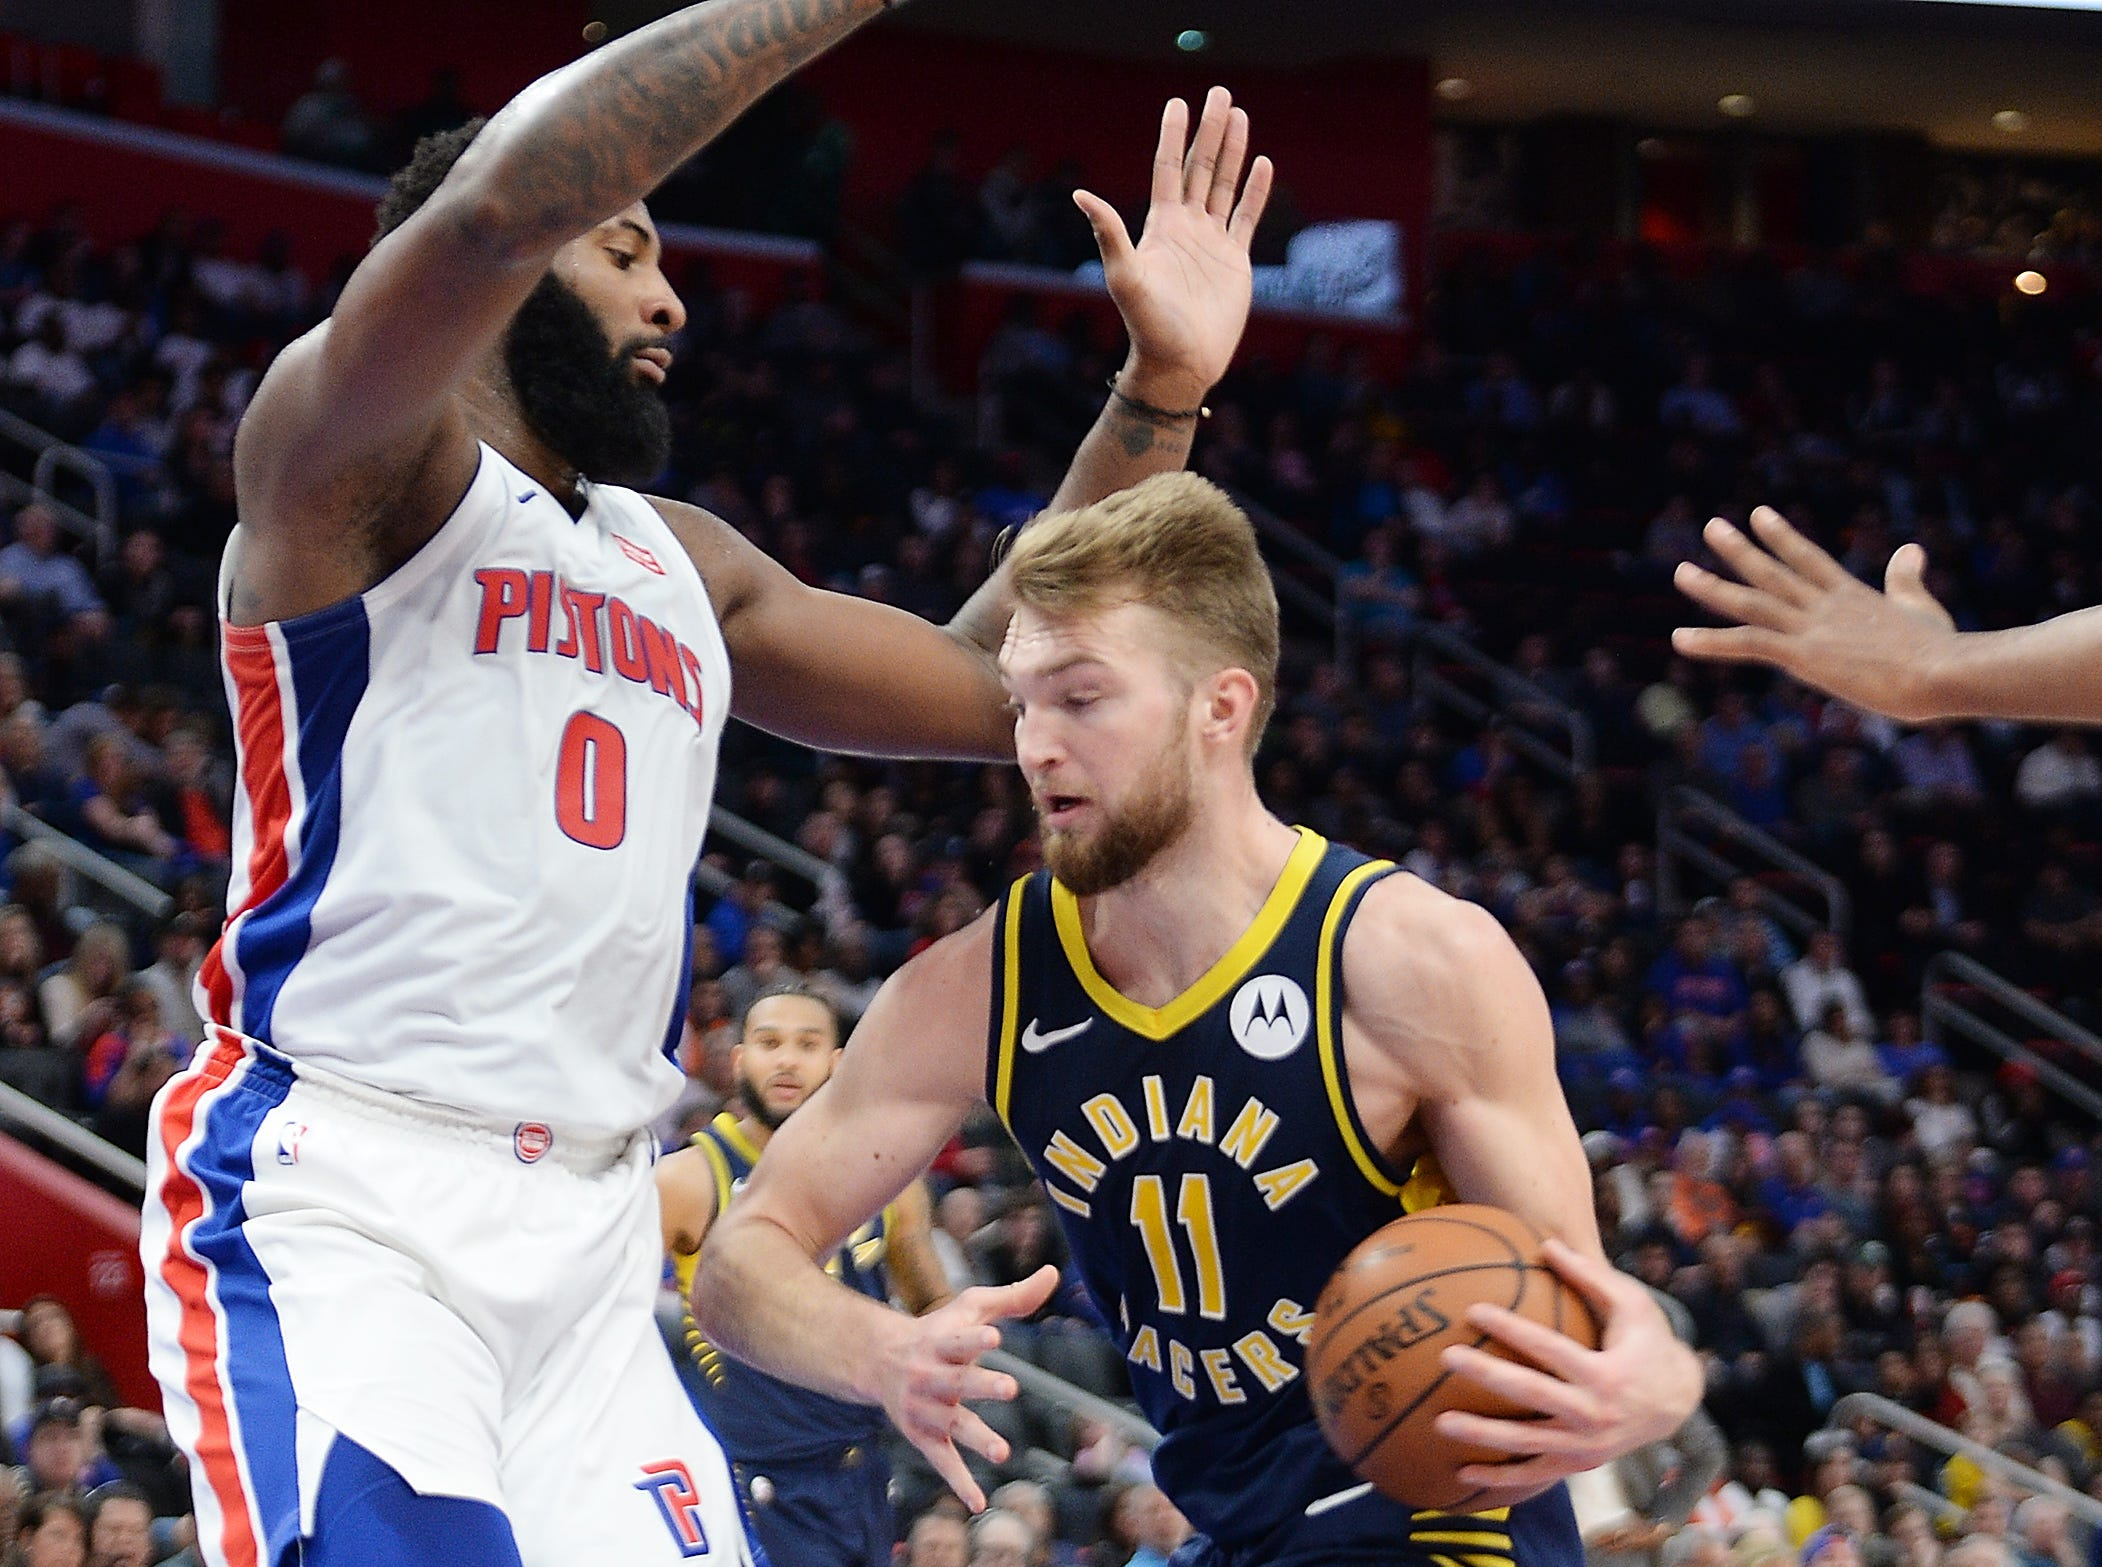 Pacers' Domantas Sabonis looks for room around Pistons' Andre Drummond in the fourth quarter.